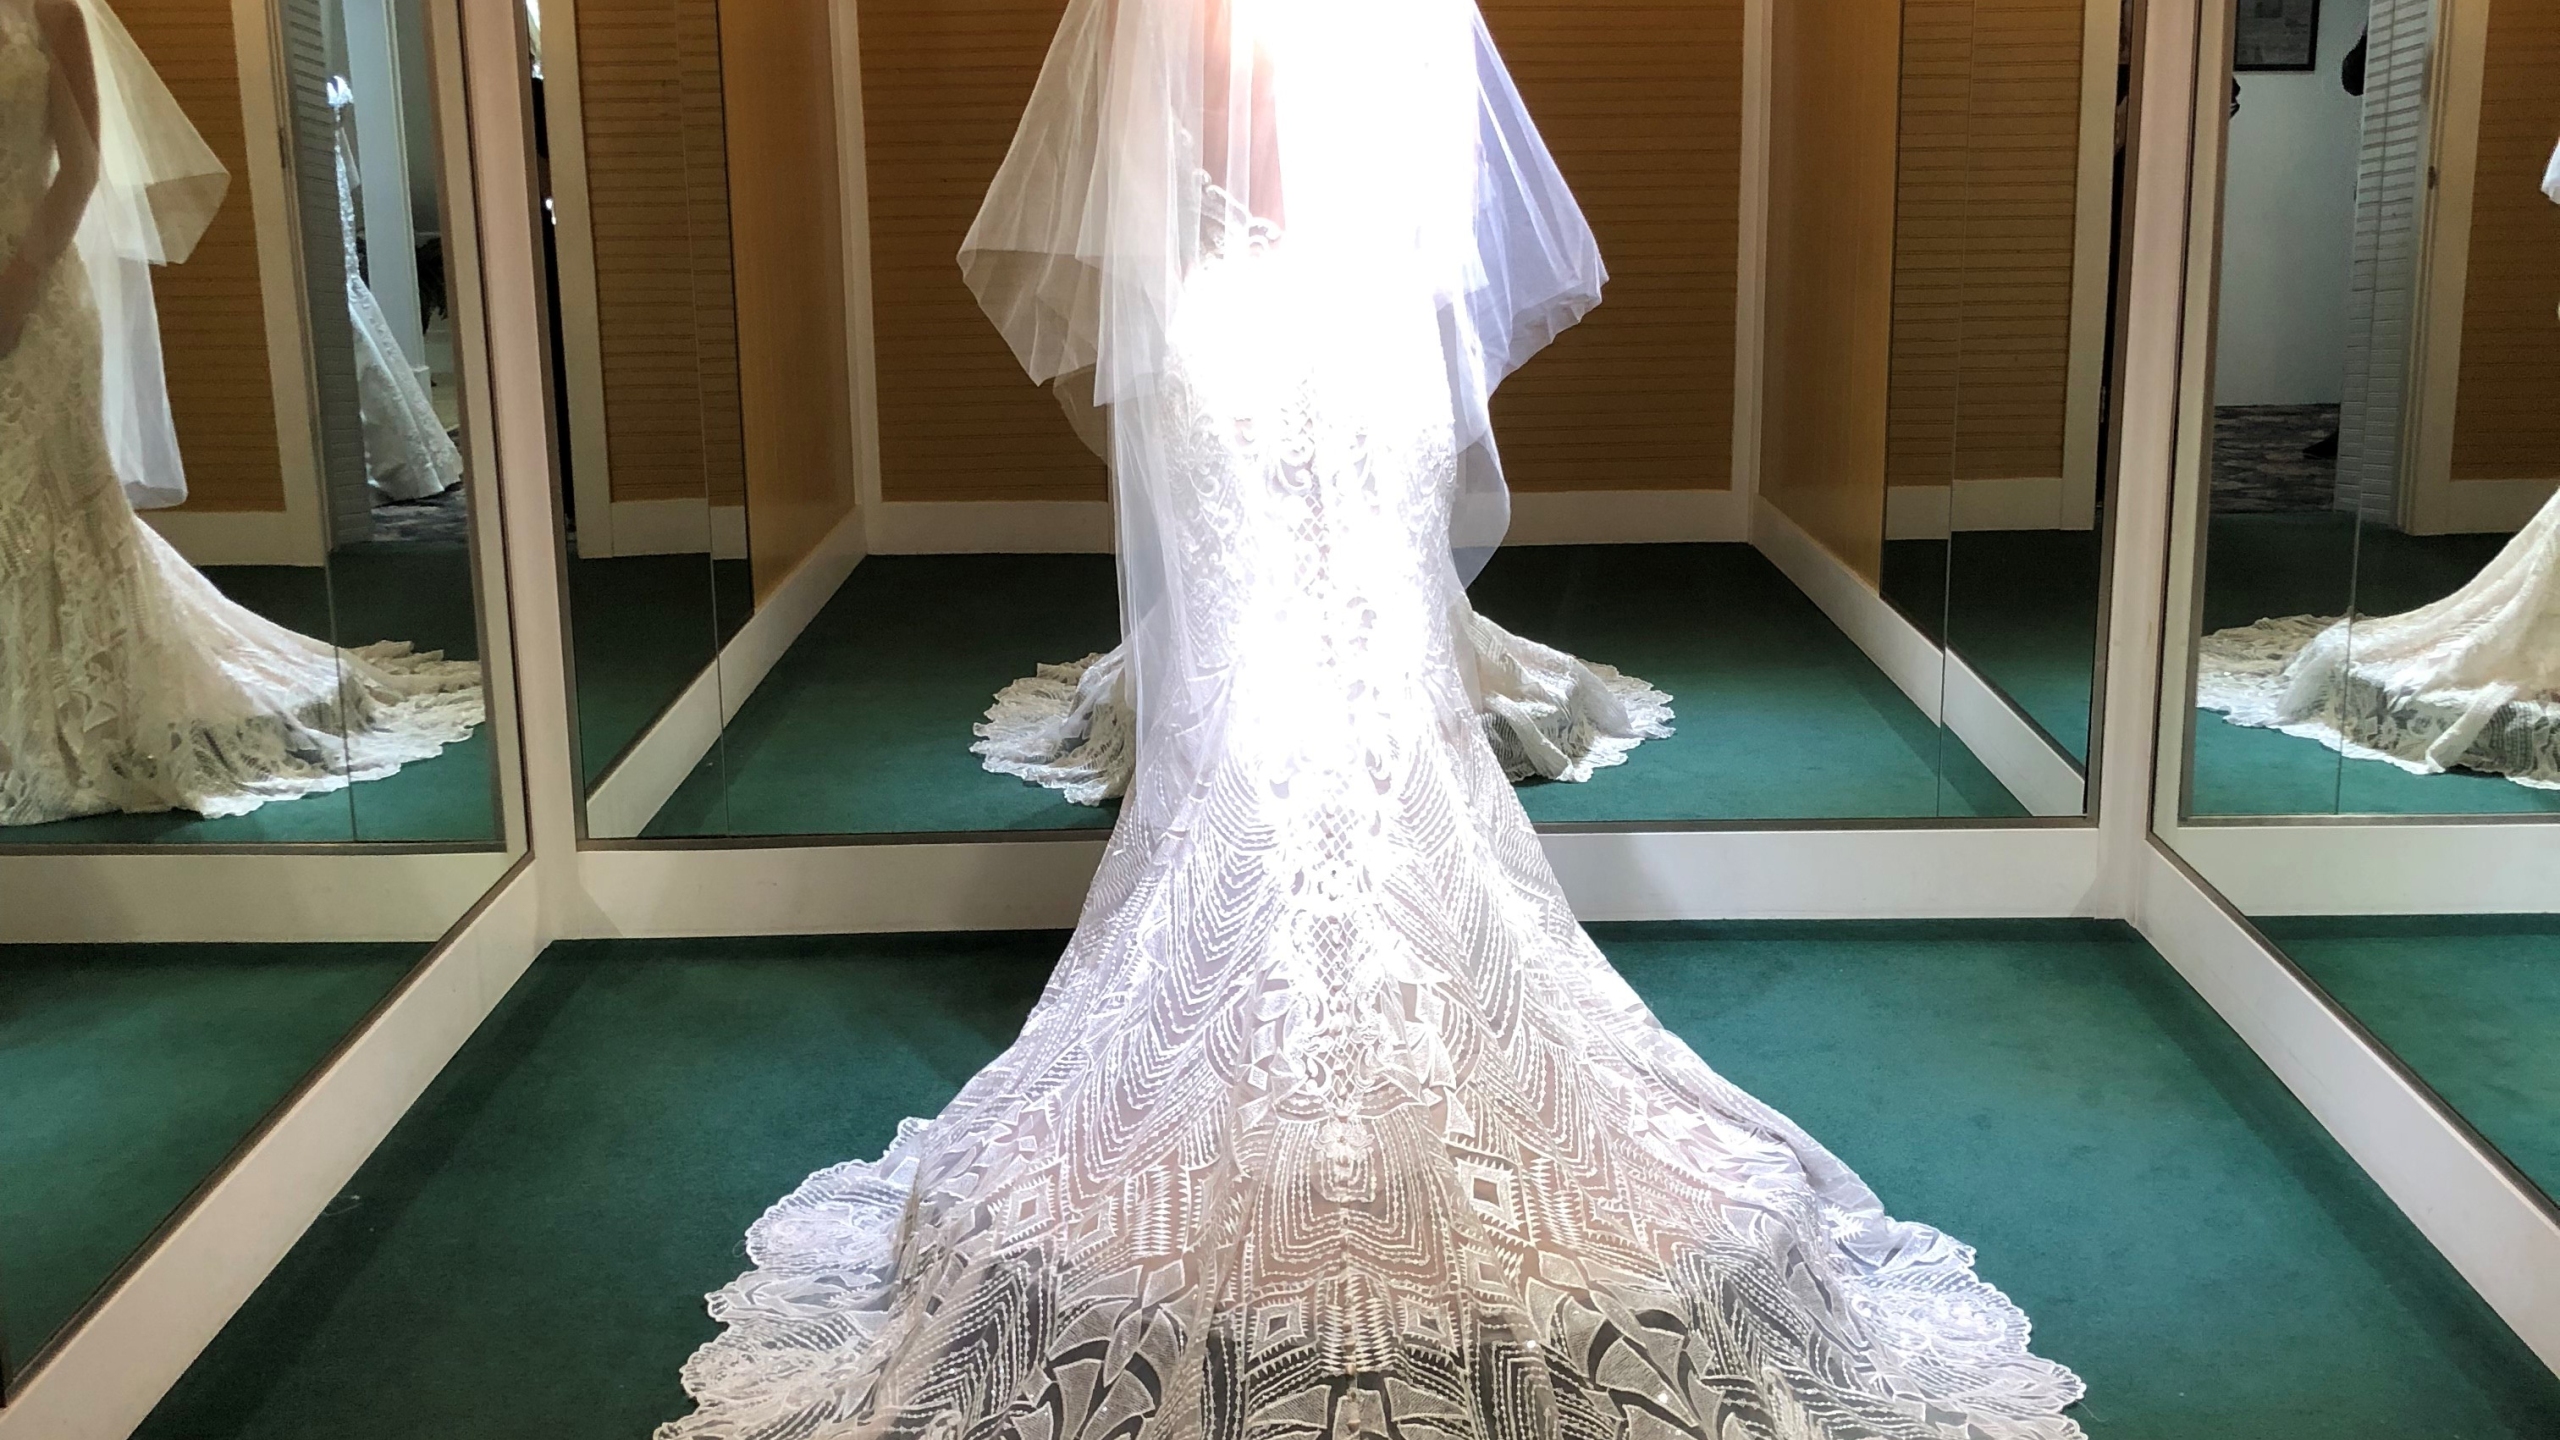 Becker's Bridal-Image for Blurb 1-Dec 10 2018_1544449642458.jpg.jpg